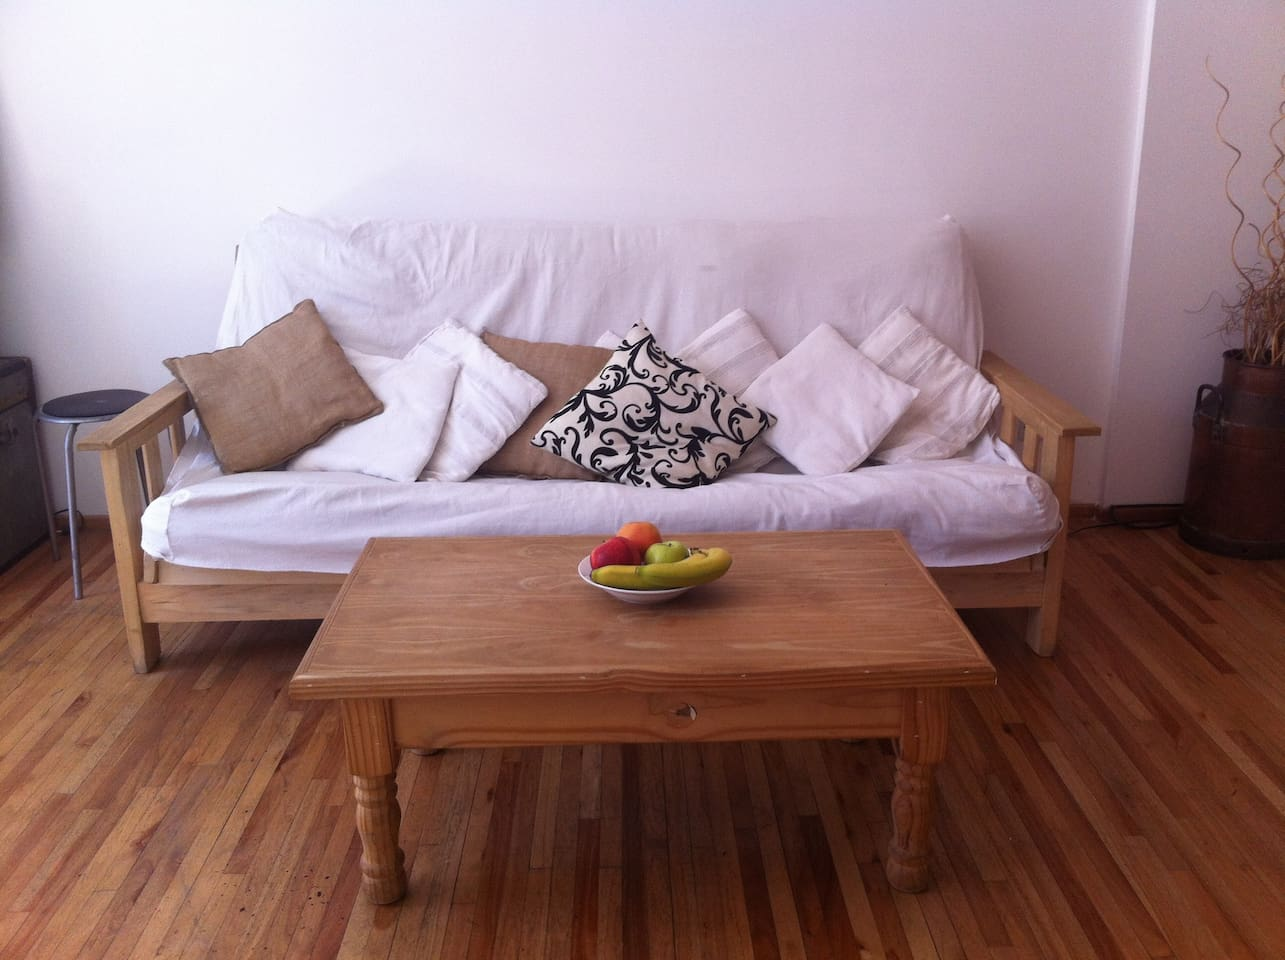 Very nice futon, where you can relax after a long walk in the city.